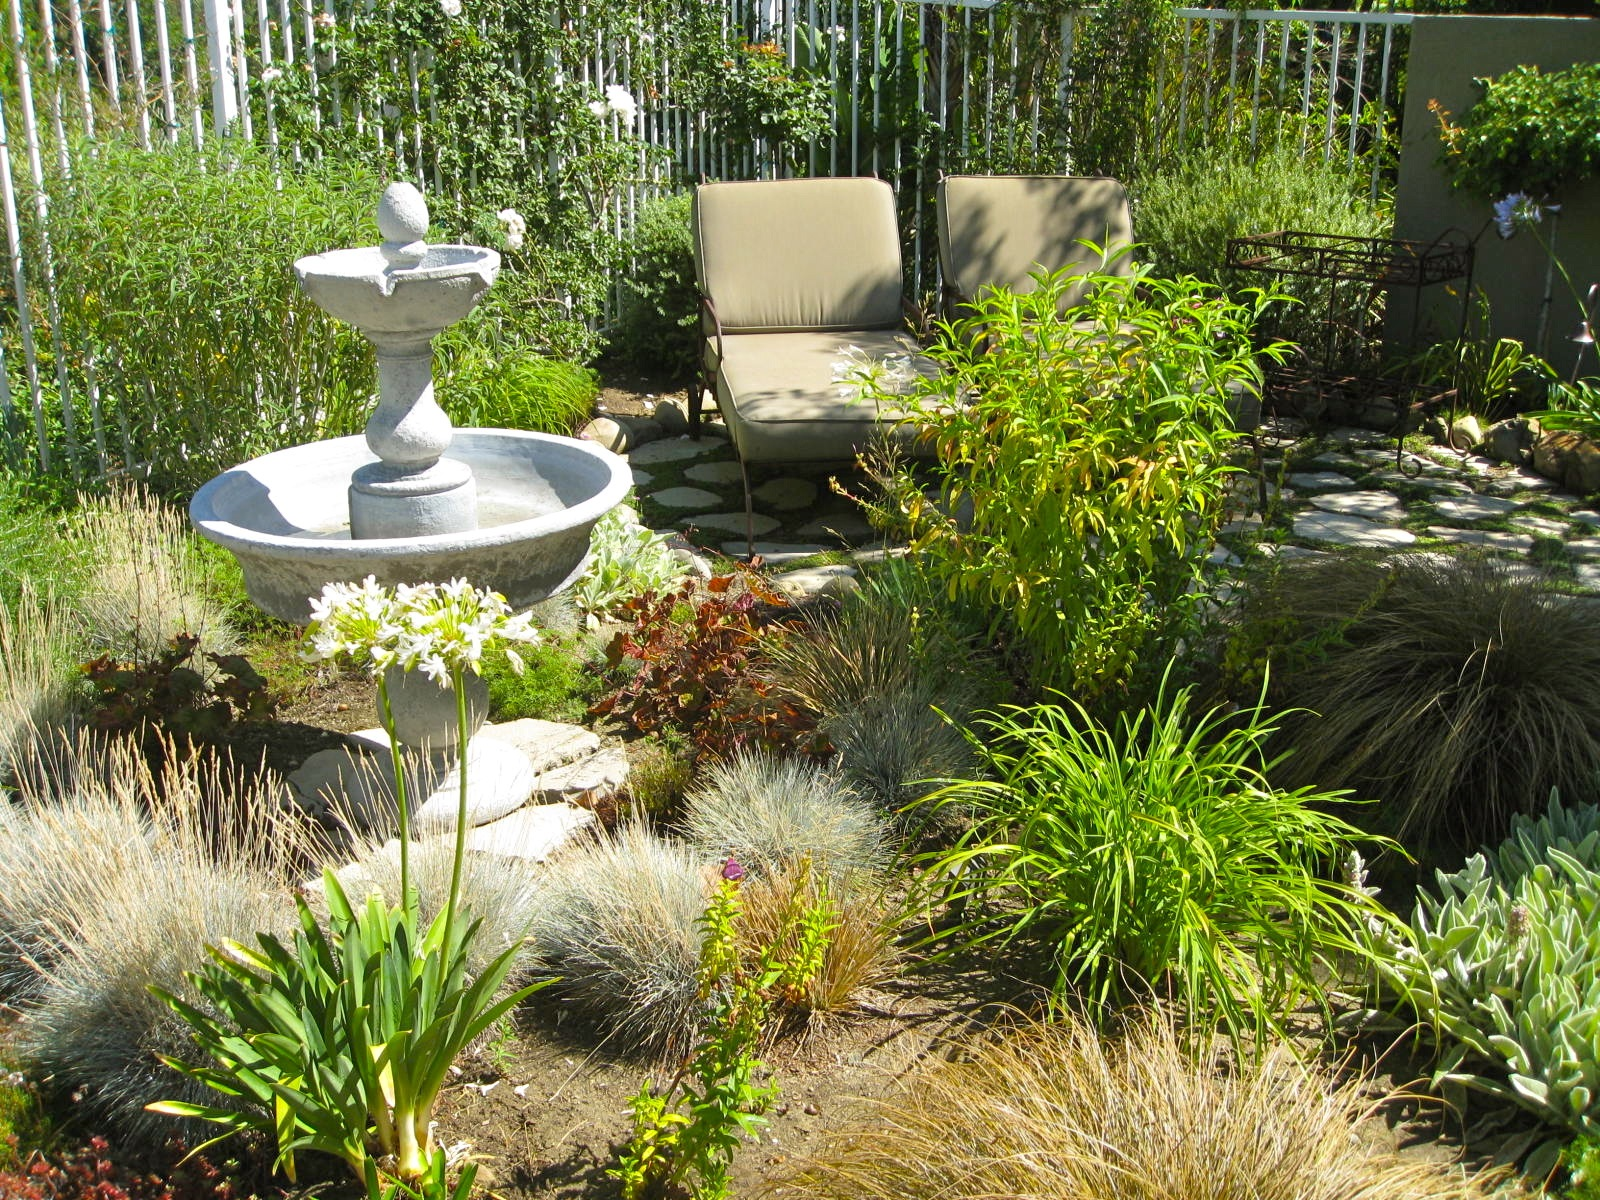 Garden Designers Roundtable: No Lawn Backyard Makeover  Outdoor Living  Areas | Eden Makers Blog By Shirley Bovshow